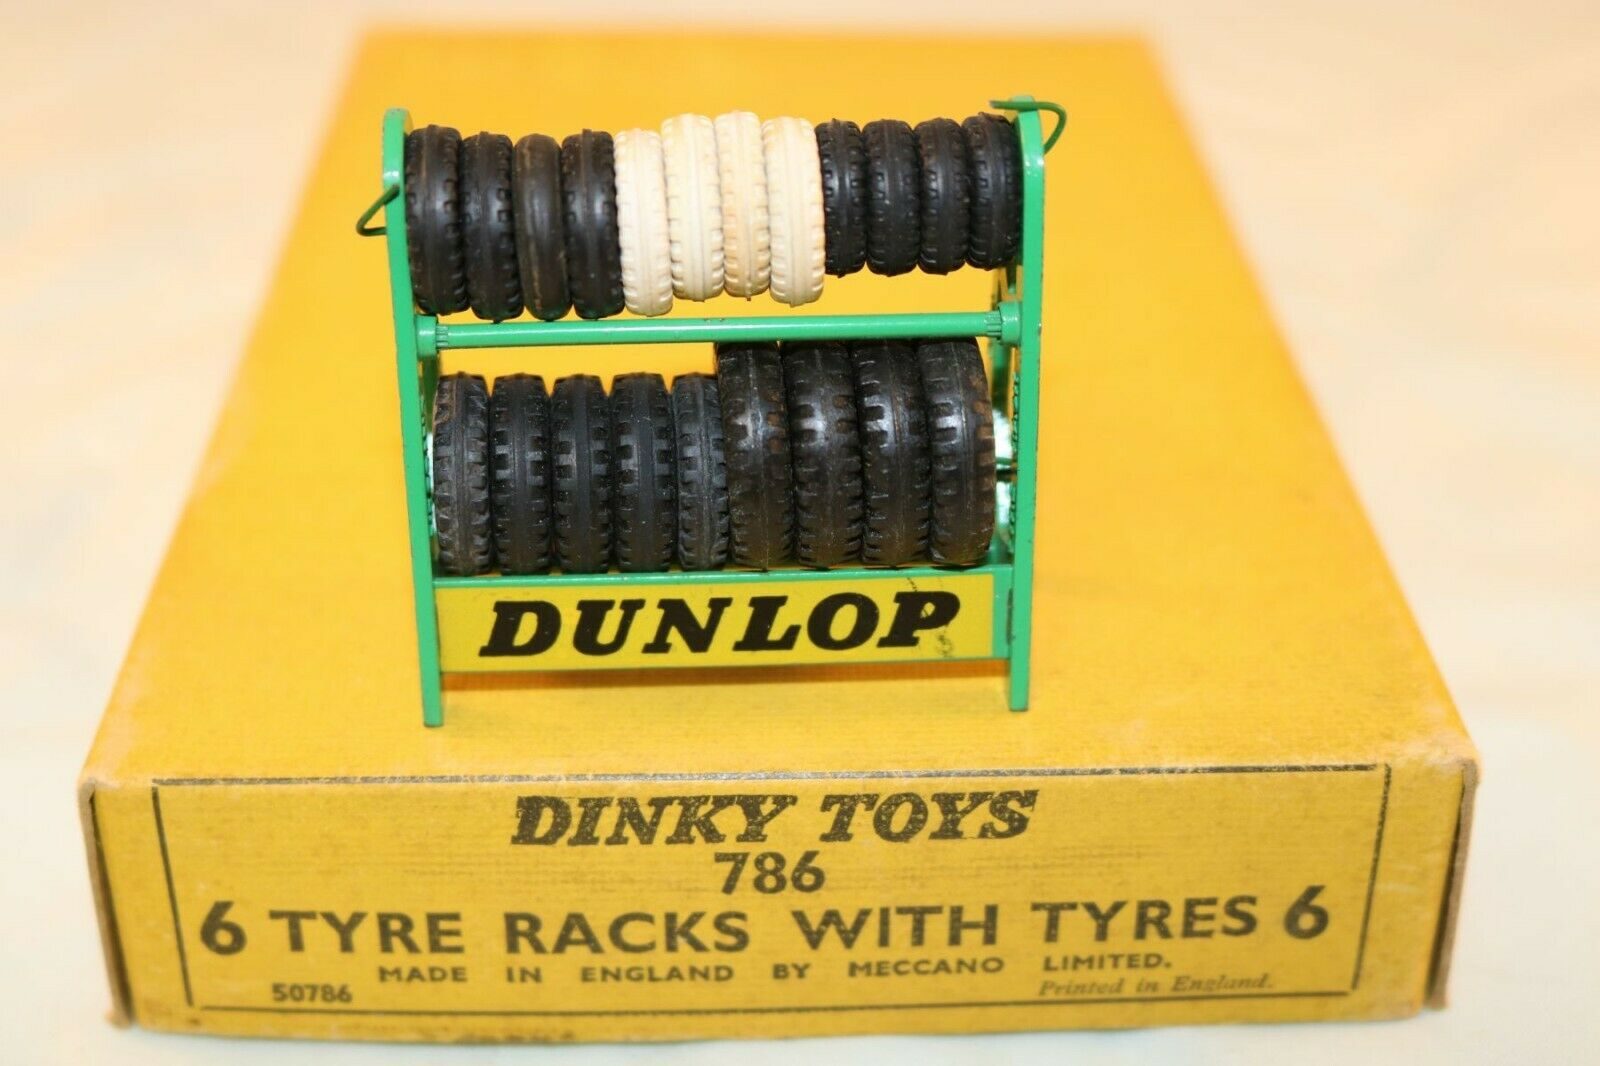 Dinky Toys 786 Dunlop tyre rack with tyres original very near mint condition 4e